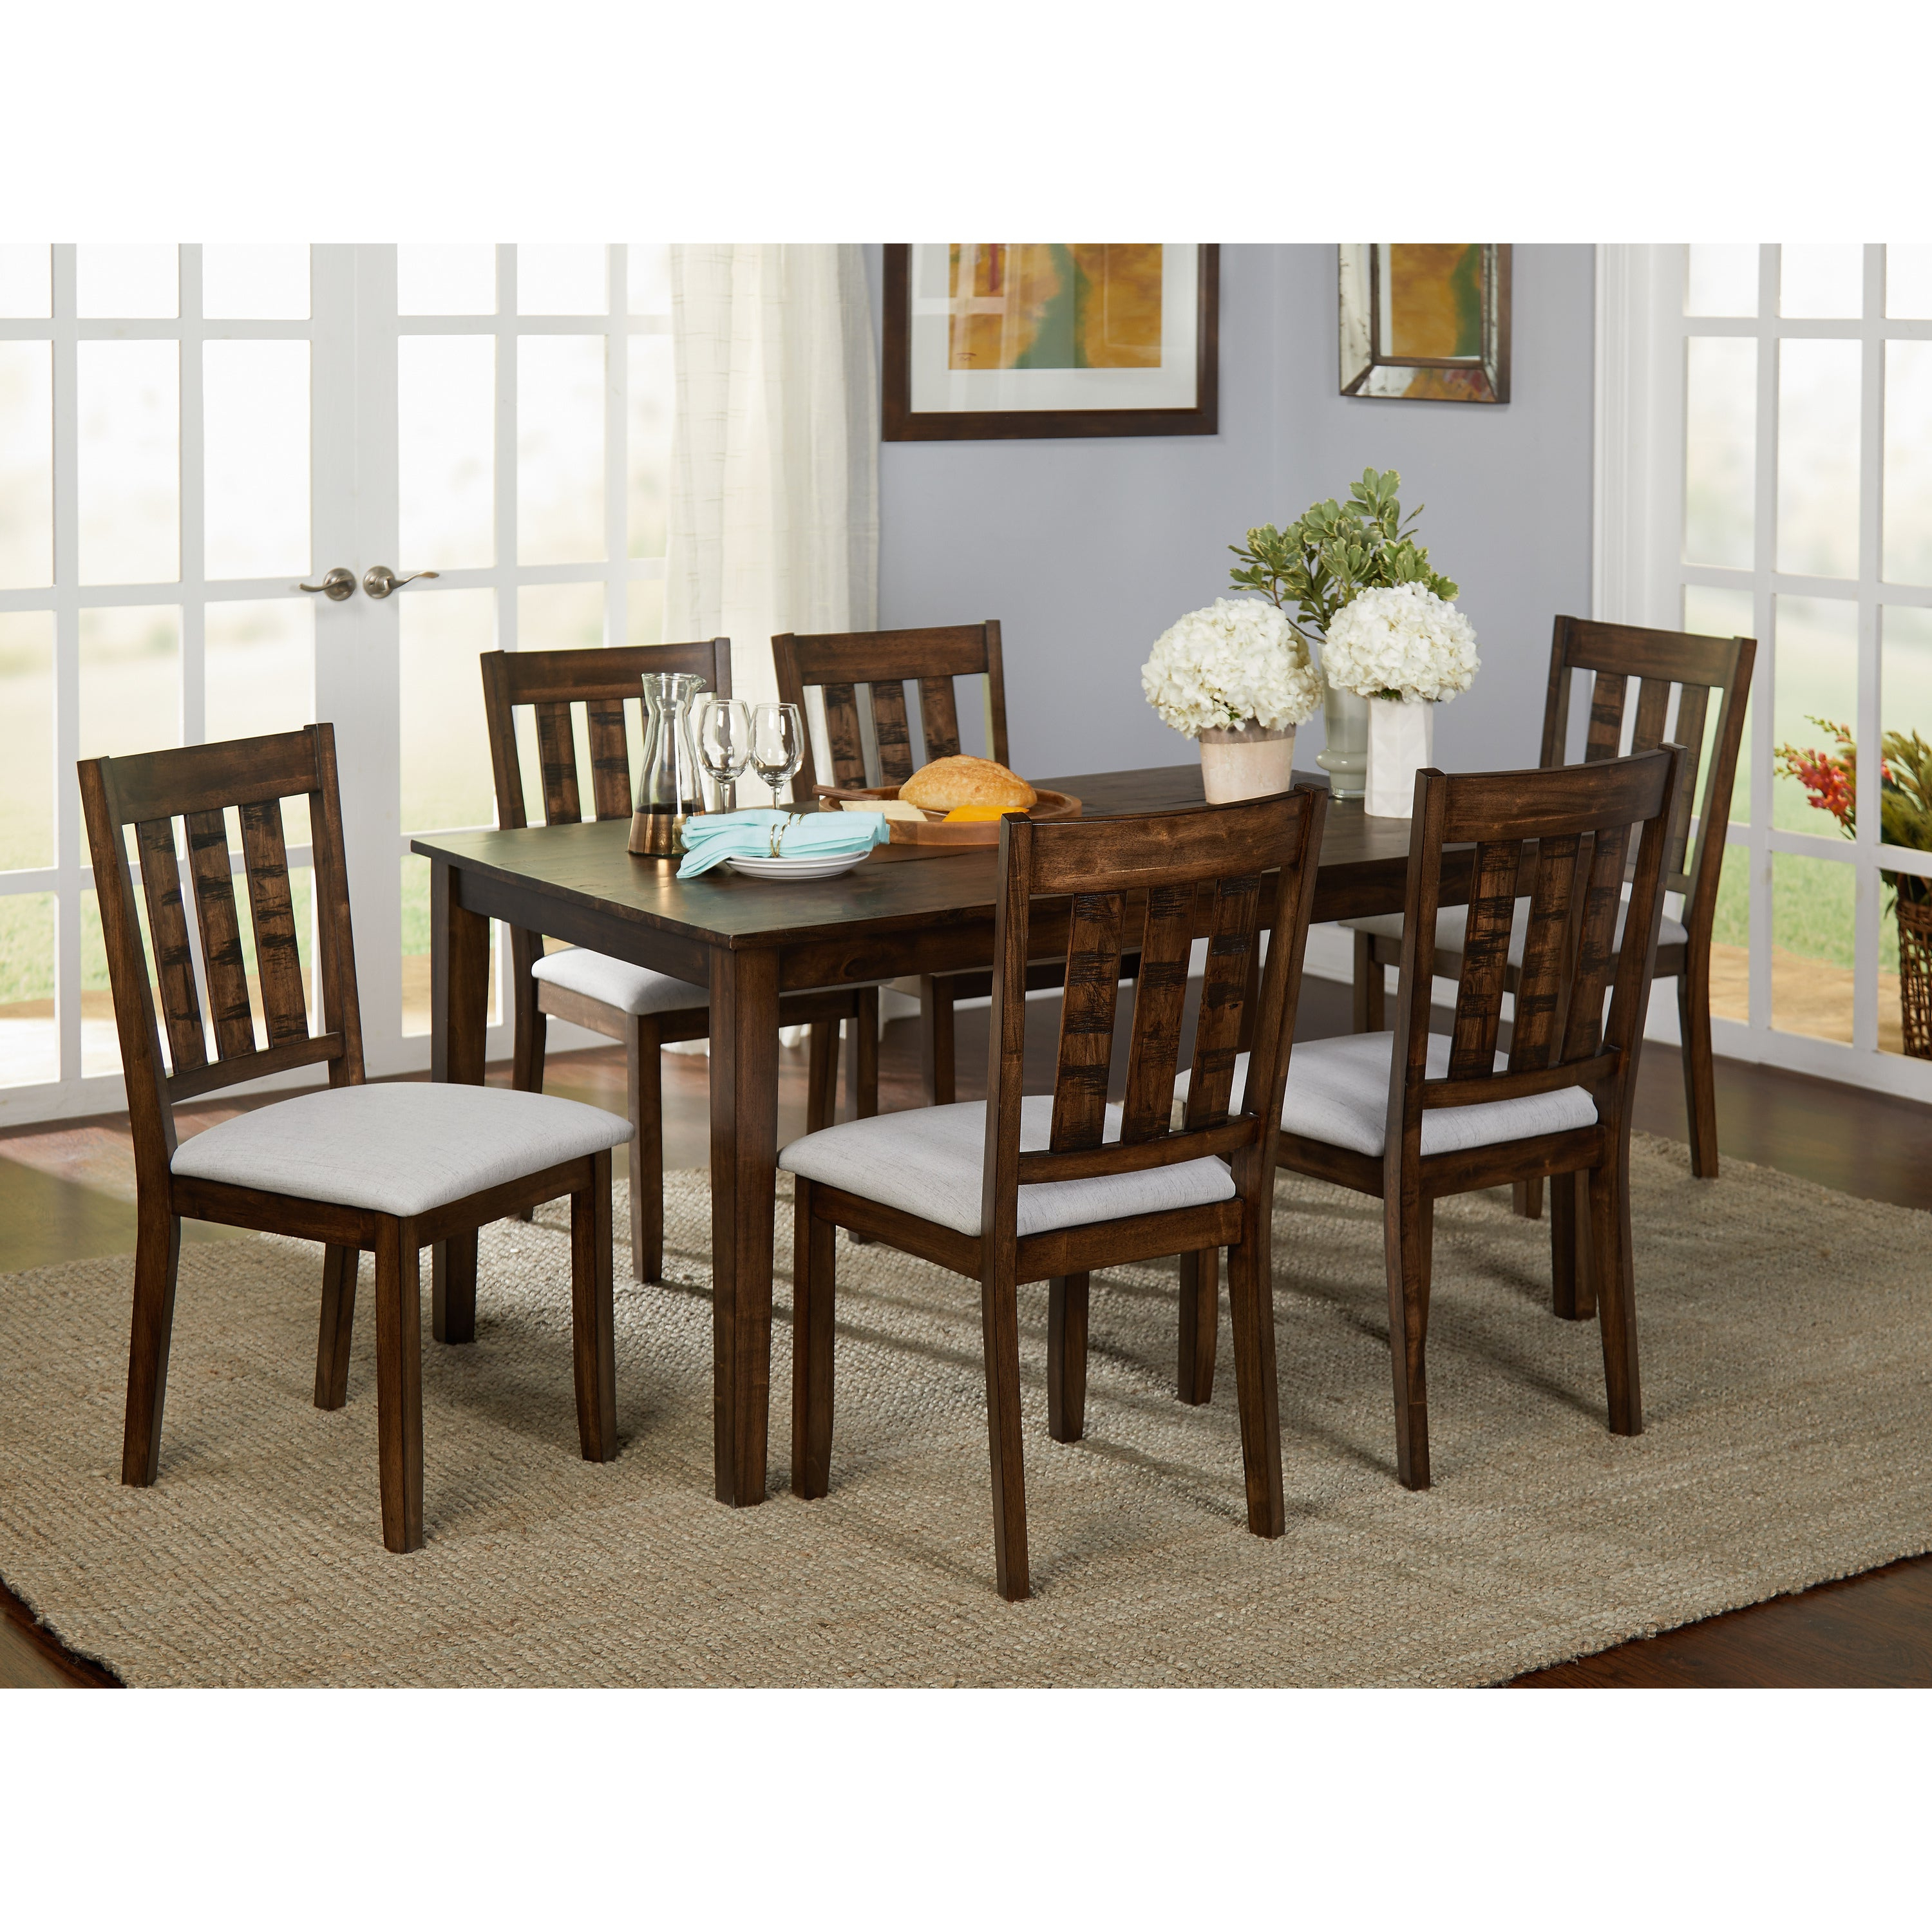 Buy Farmhouse Kitchen & Dining Room Tables Online At Overstock (View 9 of 25)